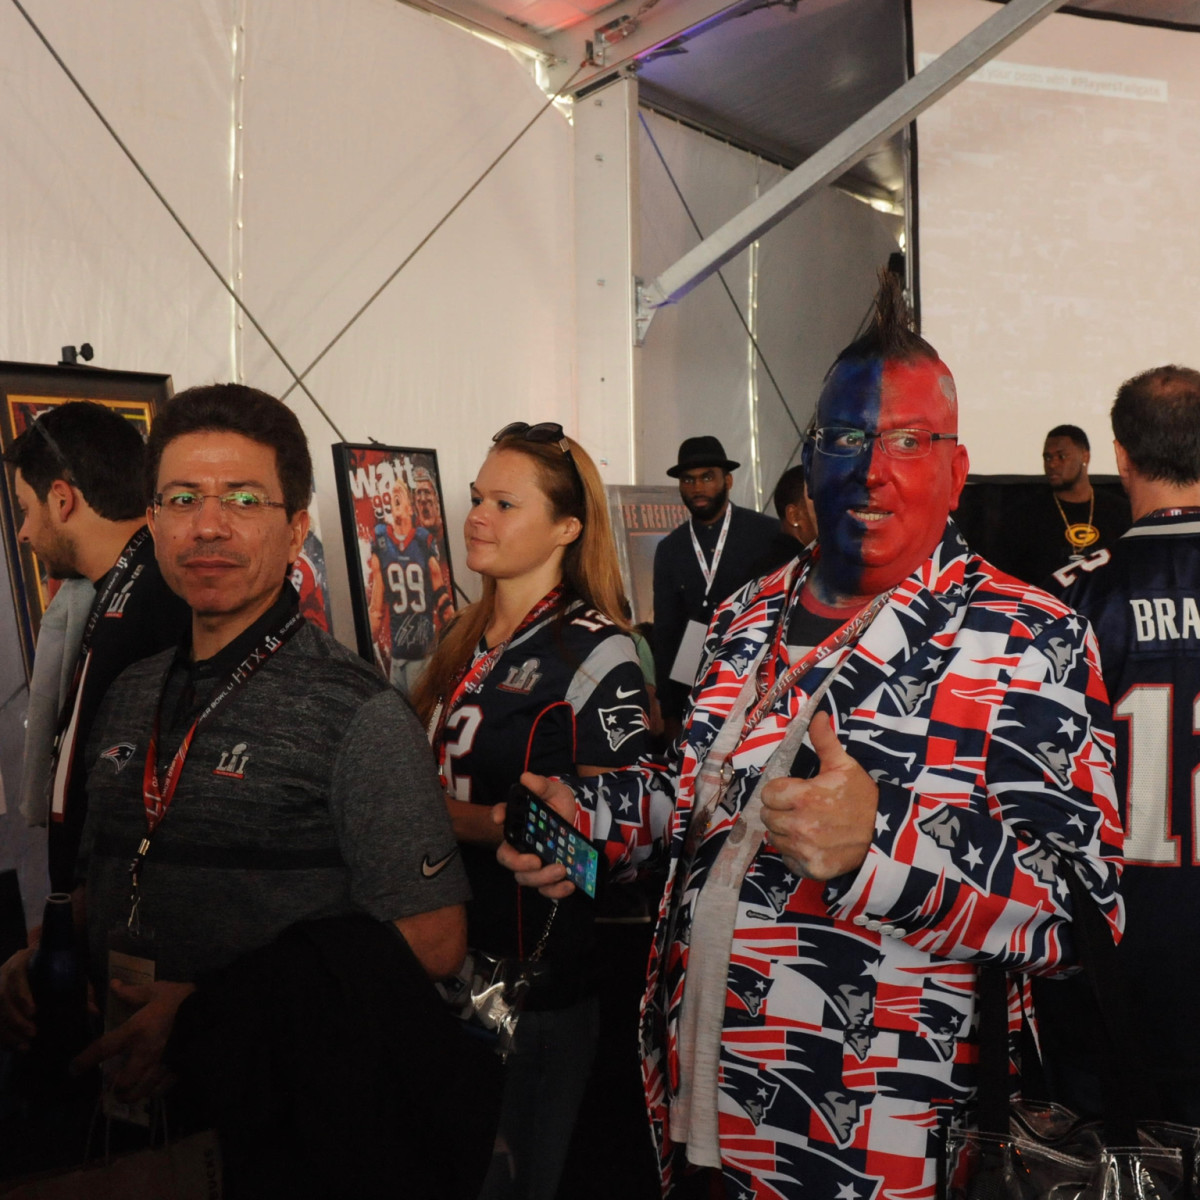 Players Tailgate Patriots fan